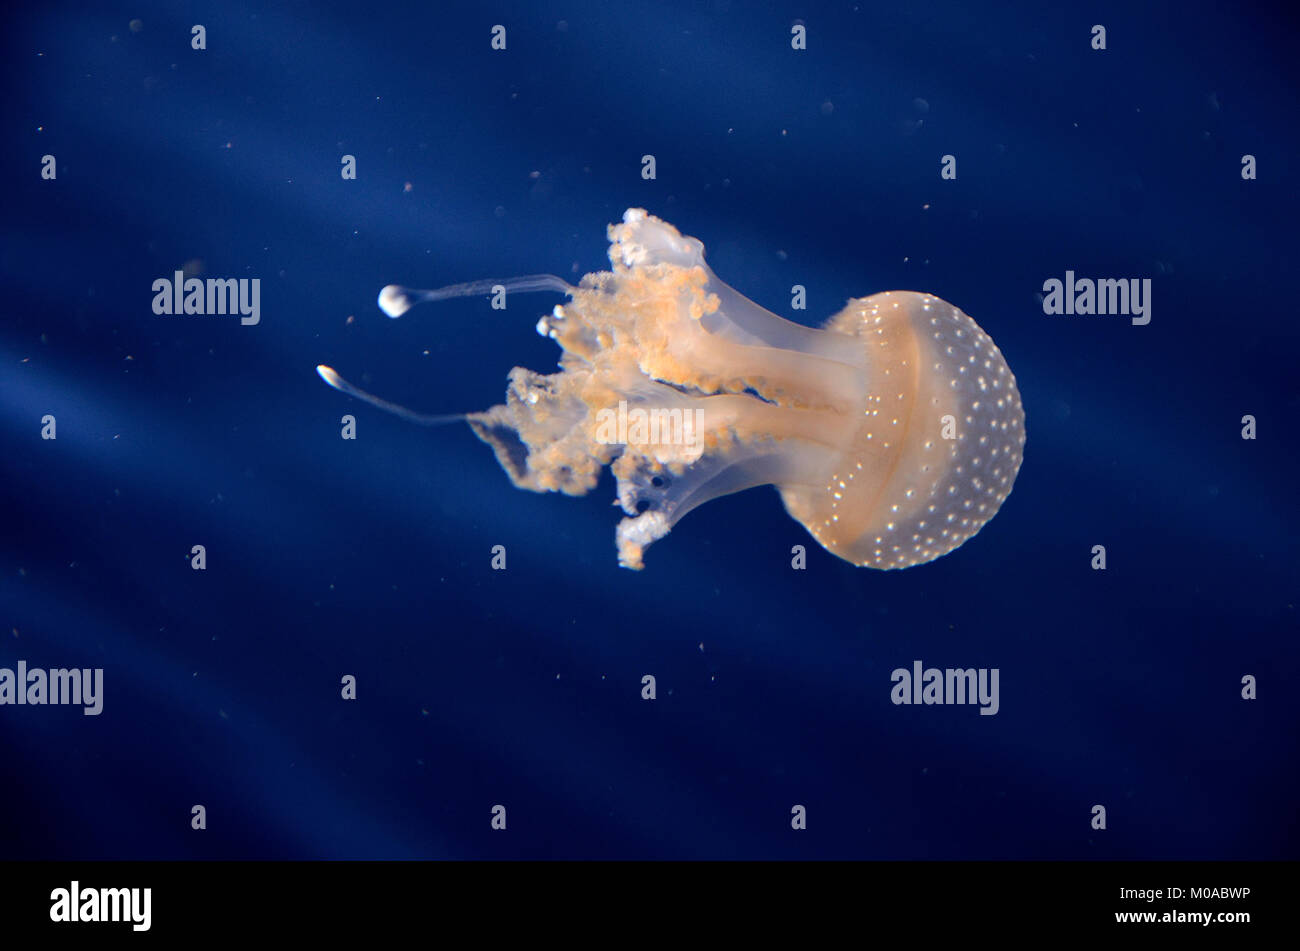 A Jellyfish in the aquarium, the light of the fishbowl makes the jellyfish look orange. Stock Photo